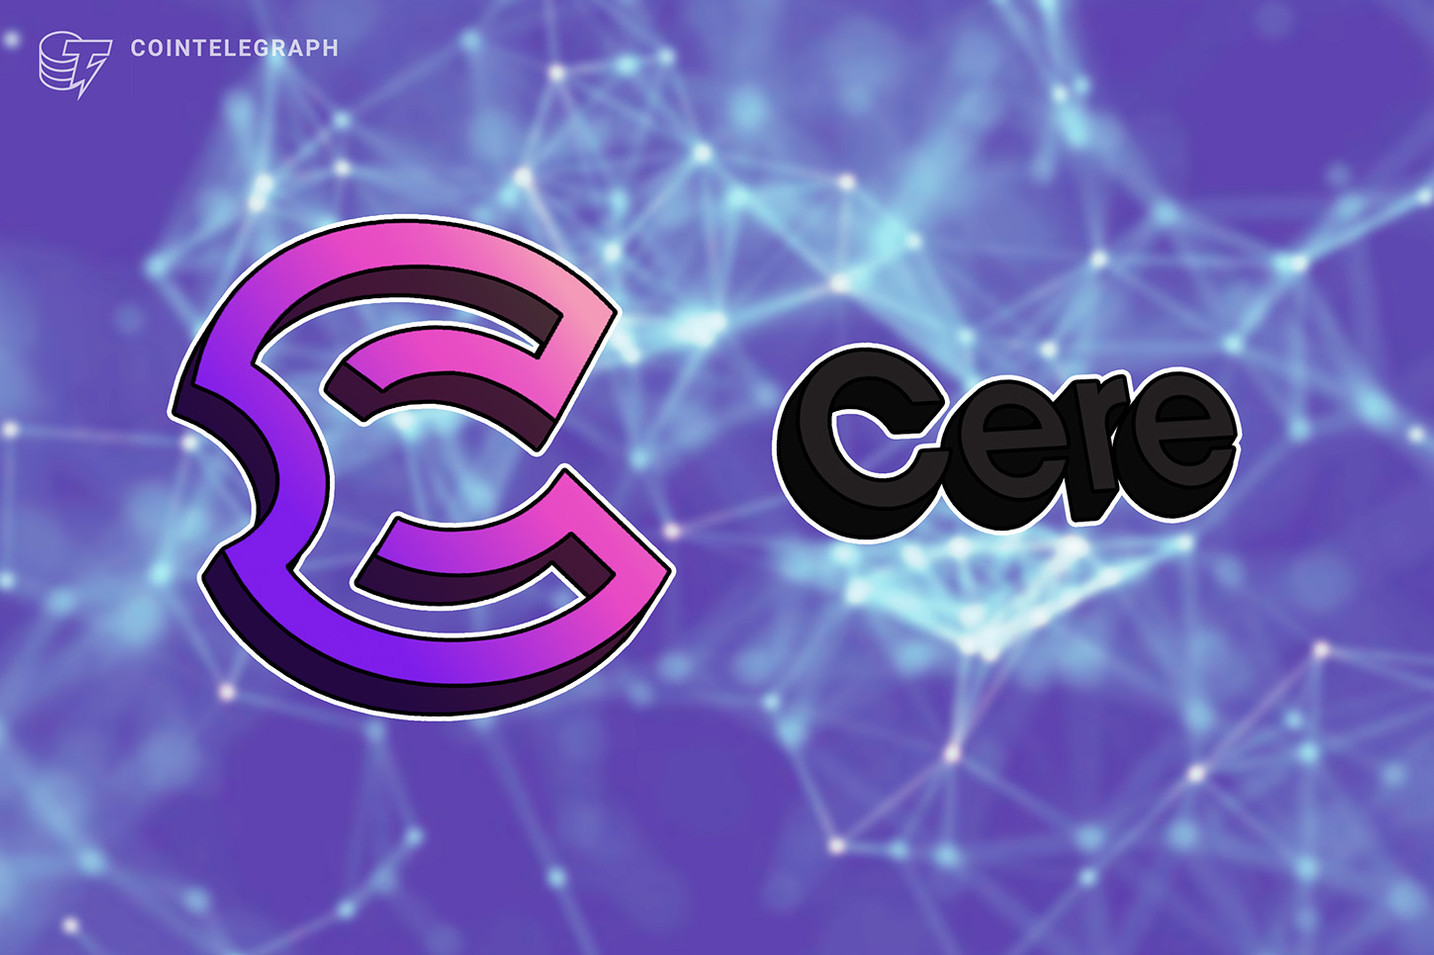 Cere to launch through Republic, DAO, Polkastarter after 80x oversubscribed sale